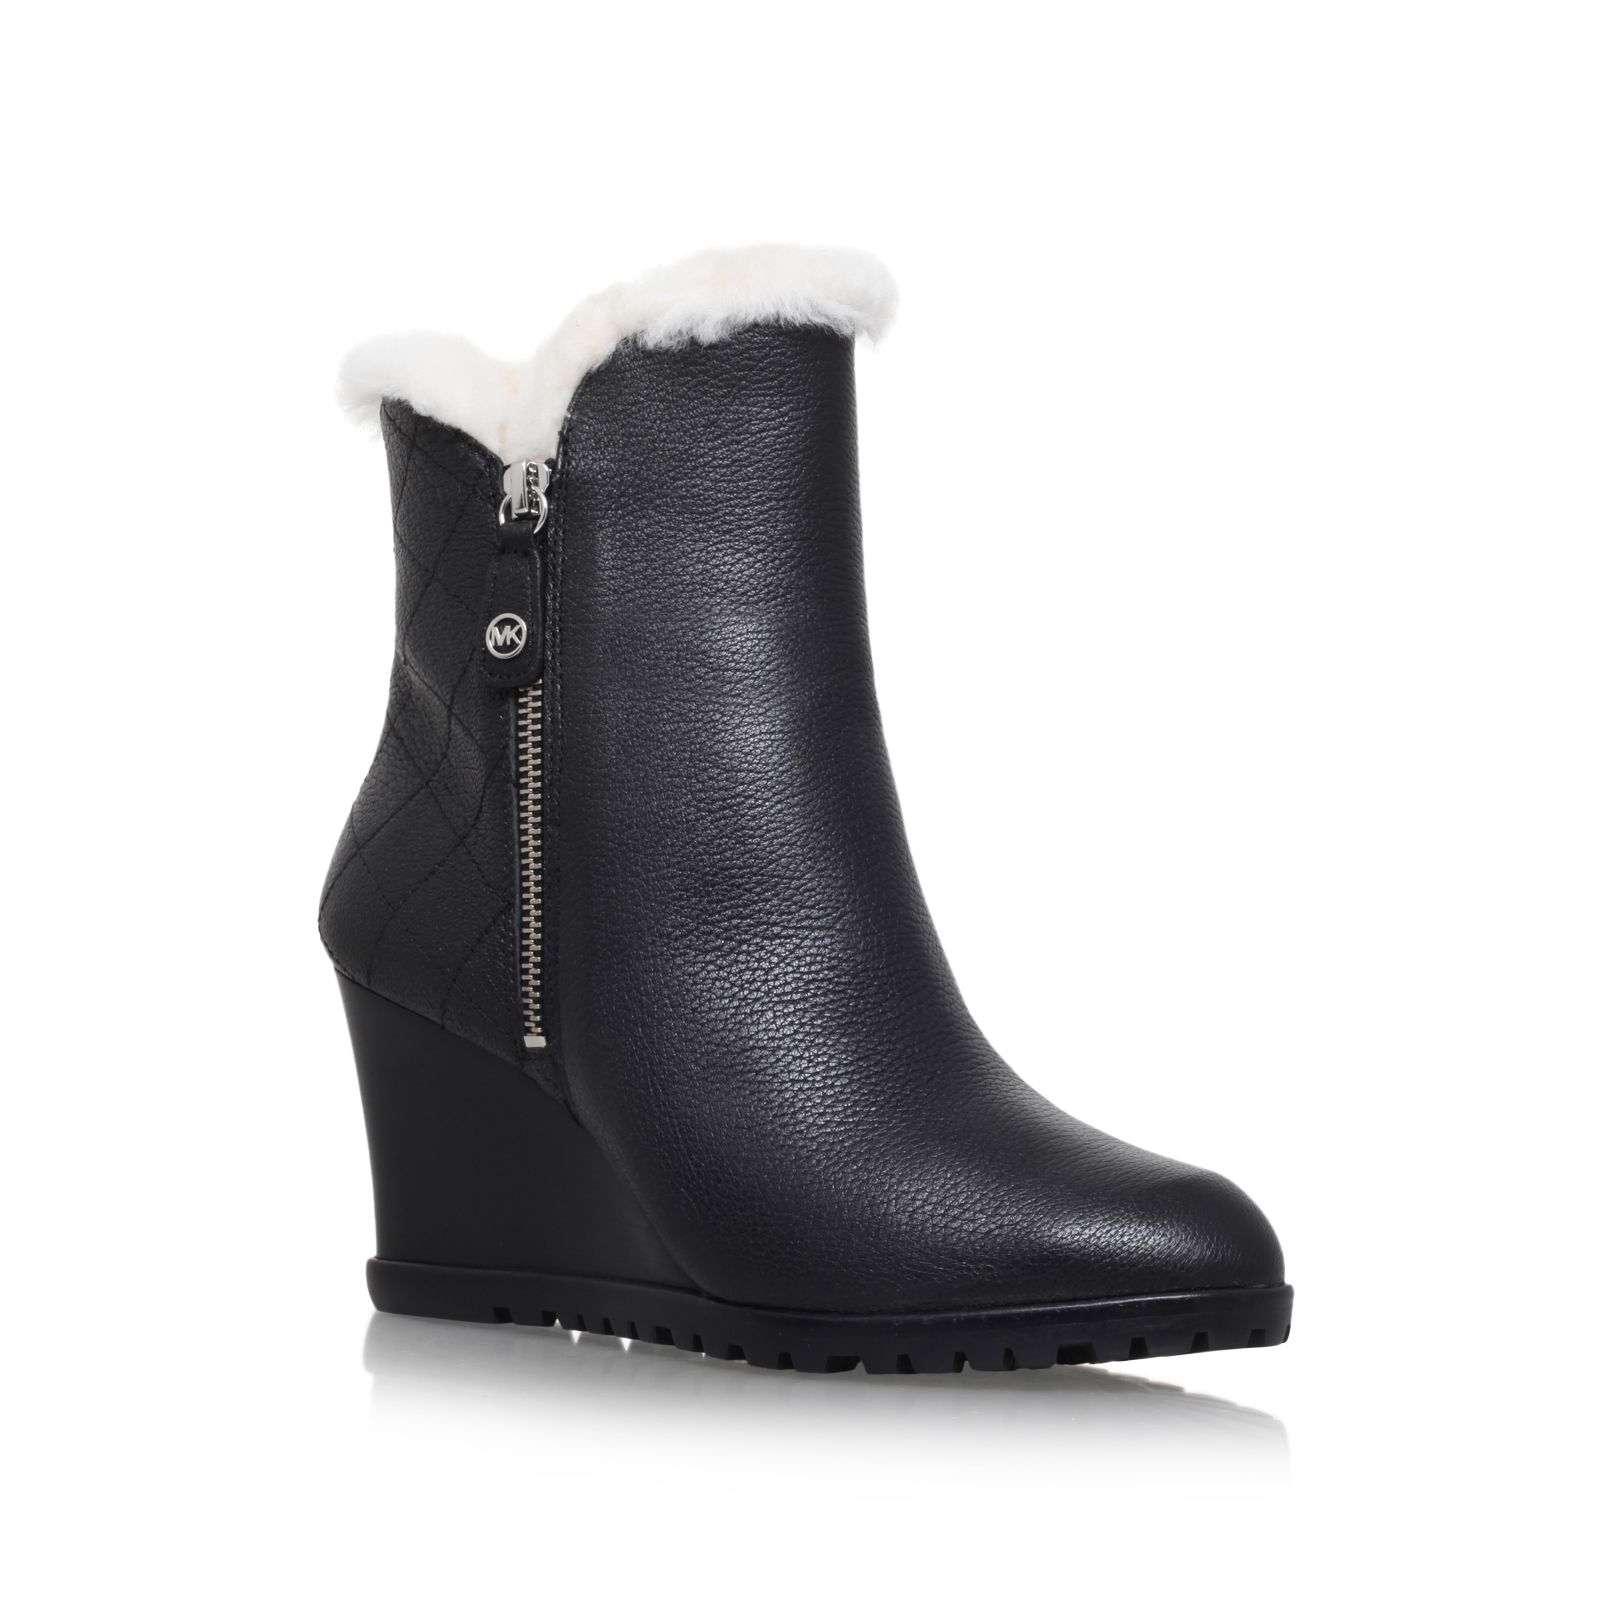 Michael Kors Whitaker Wedge Fur Lined Ankle Boots in Black